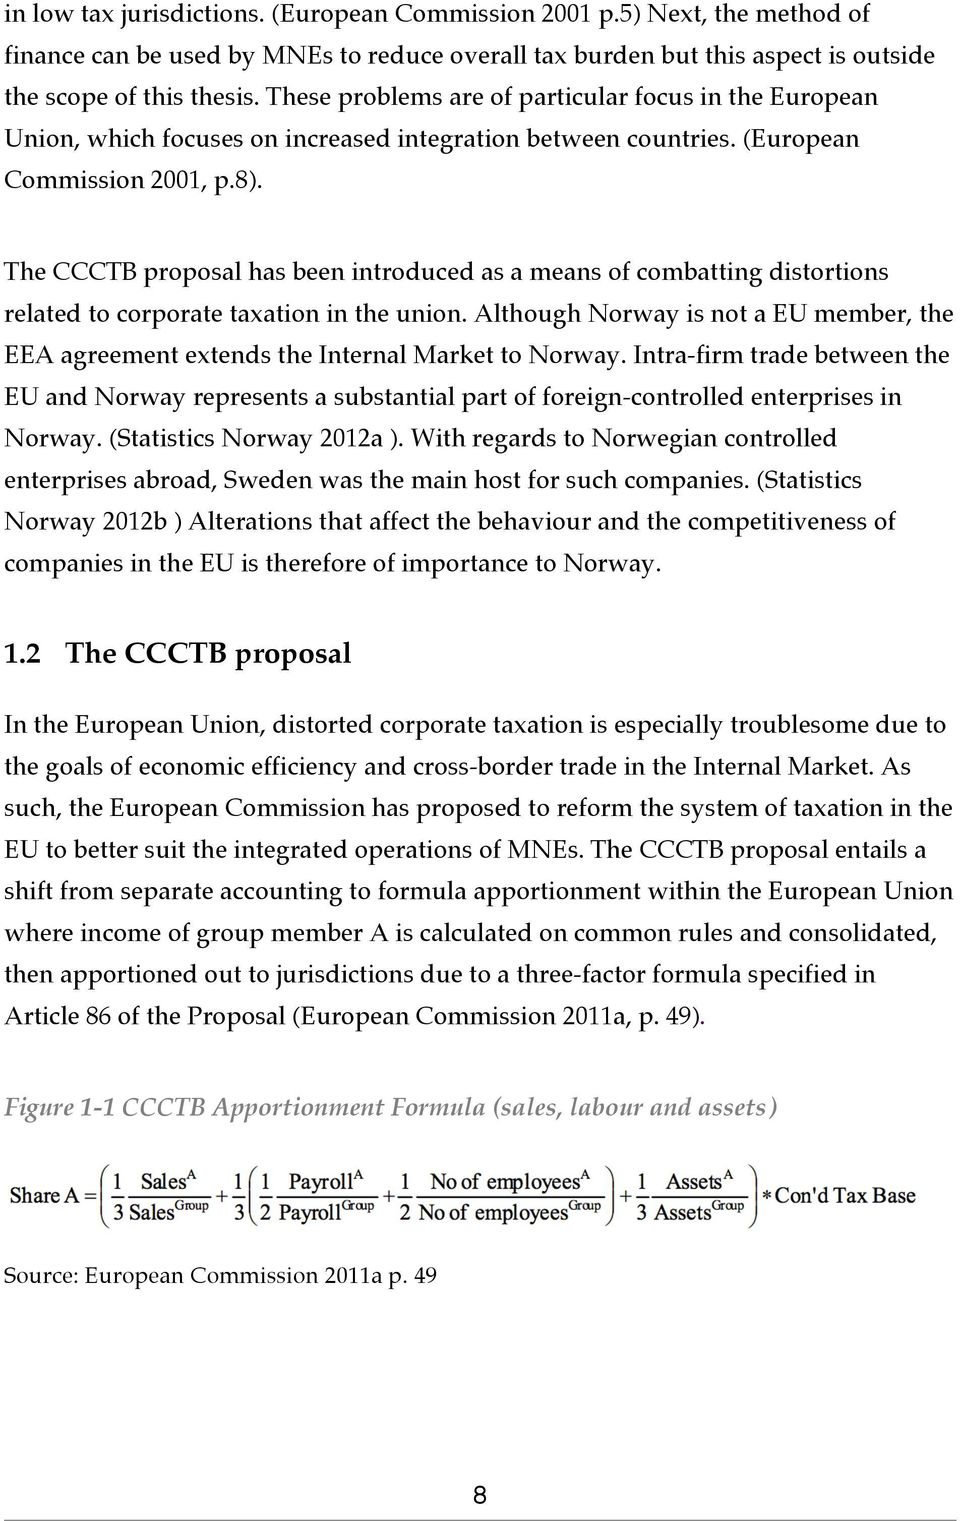 The CCCTB proposal has been introduced as a means of combatting distortions related to corporate taxation in the union.